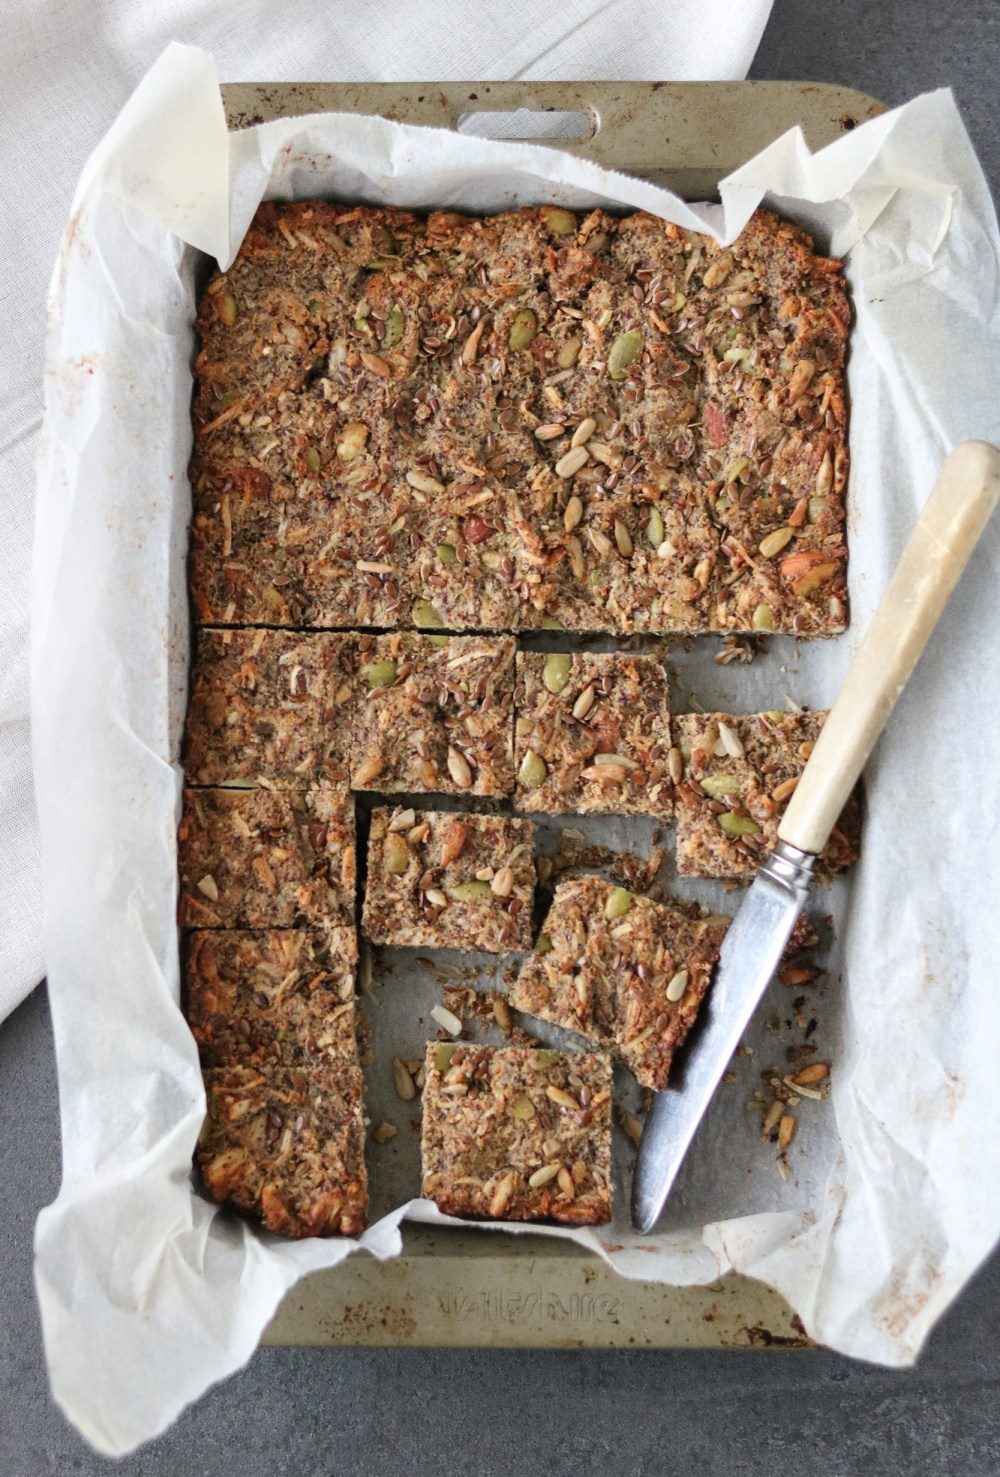 Photo: Fruit free muesli bar slice